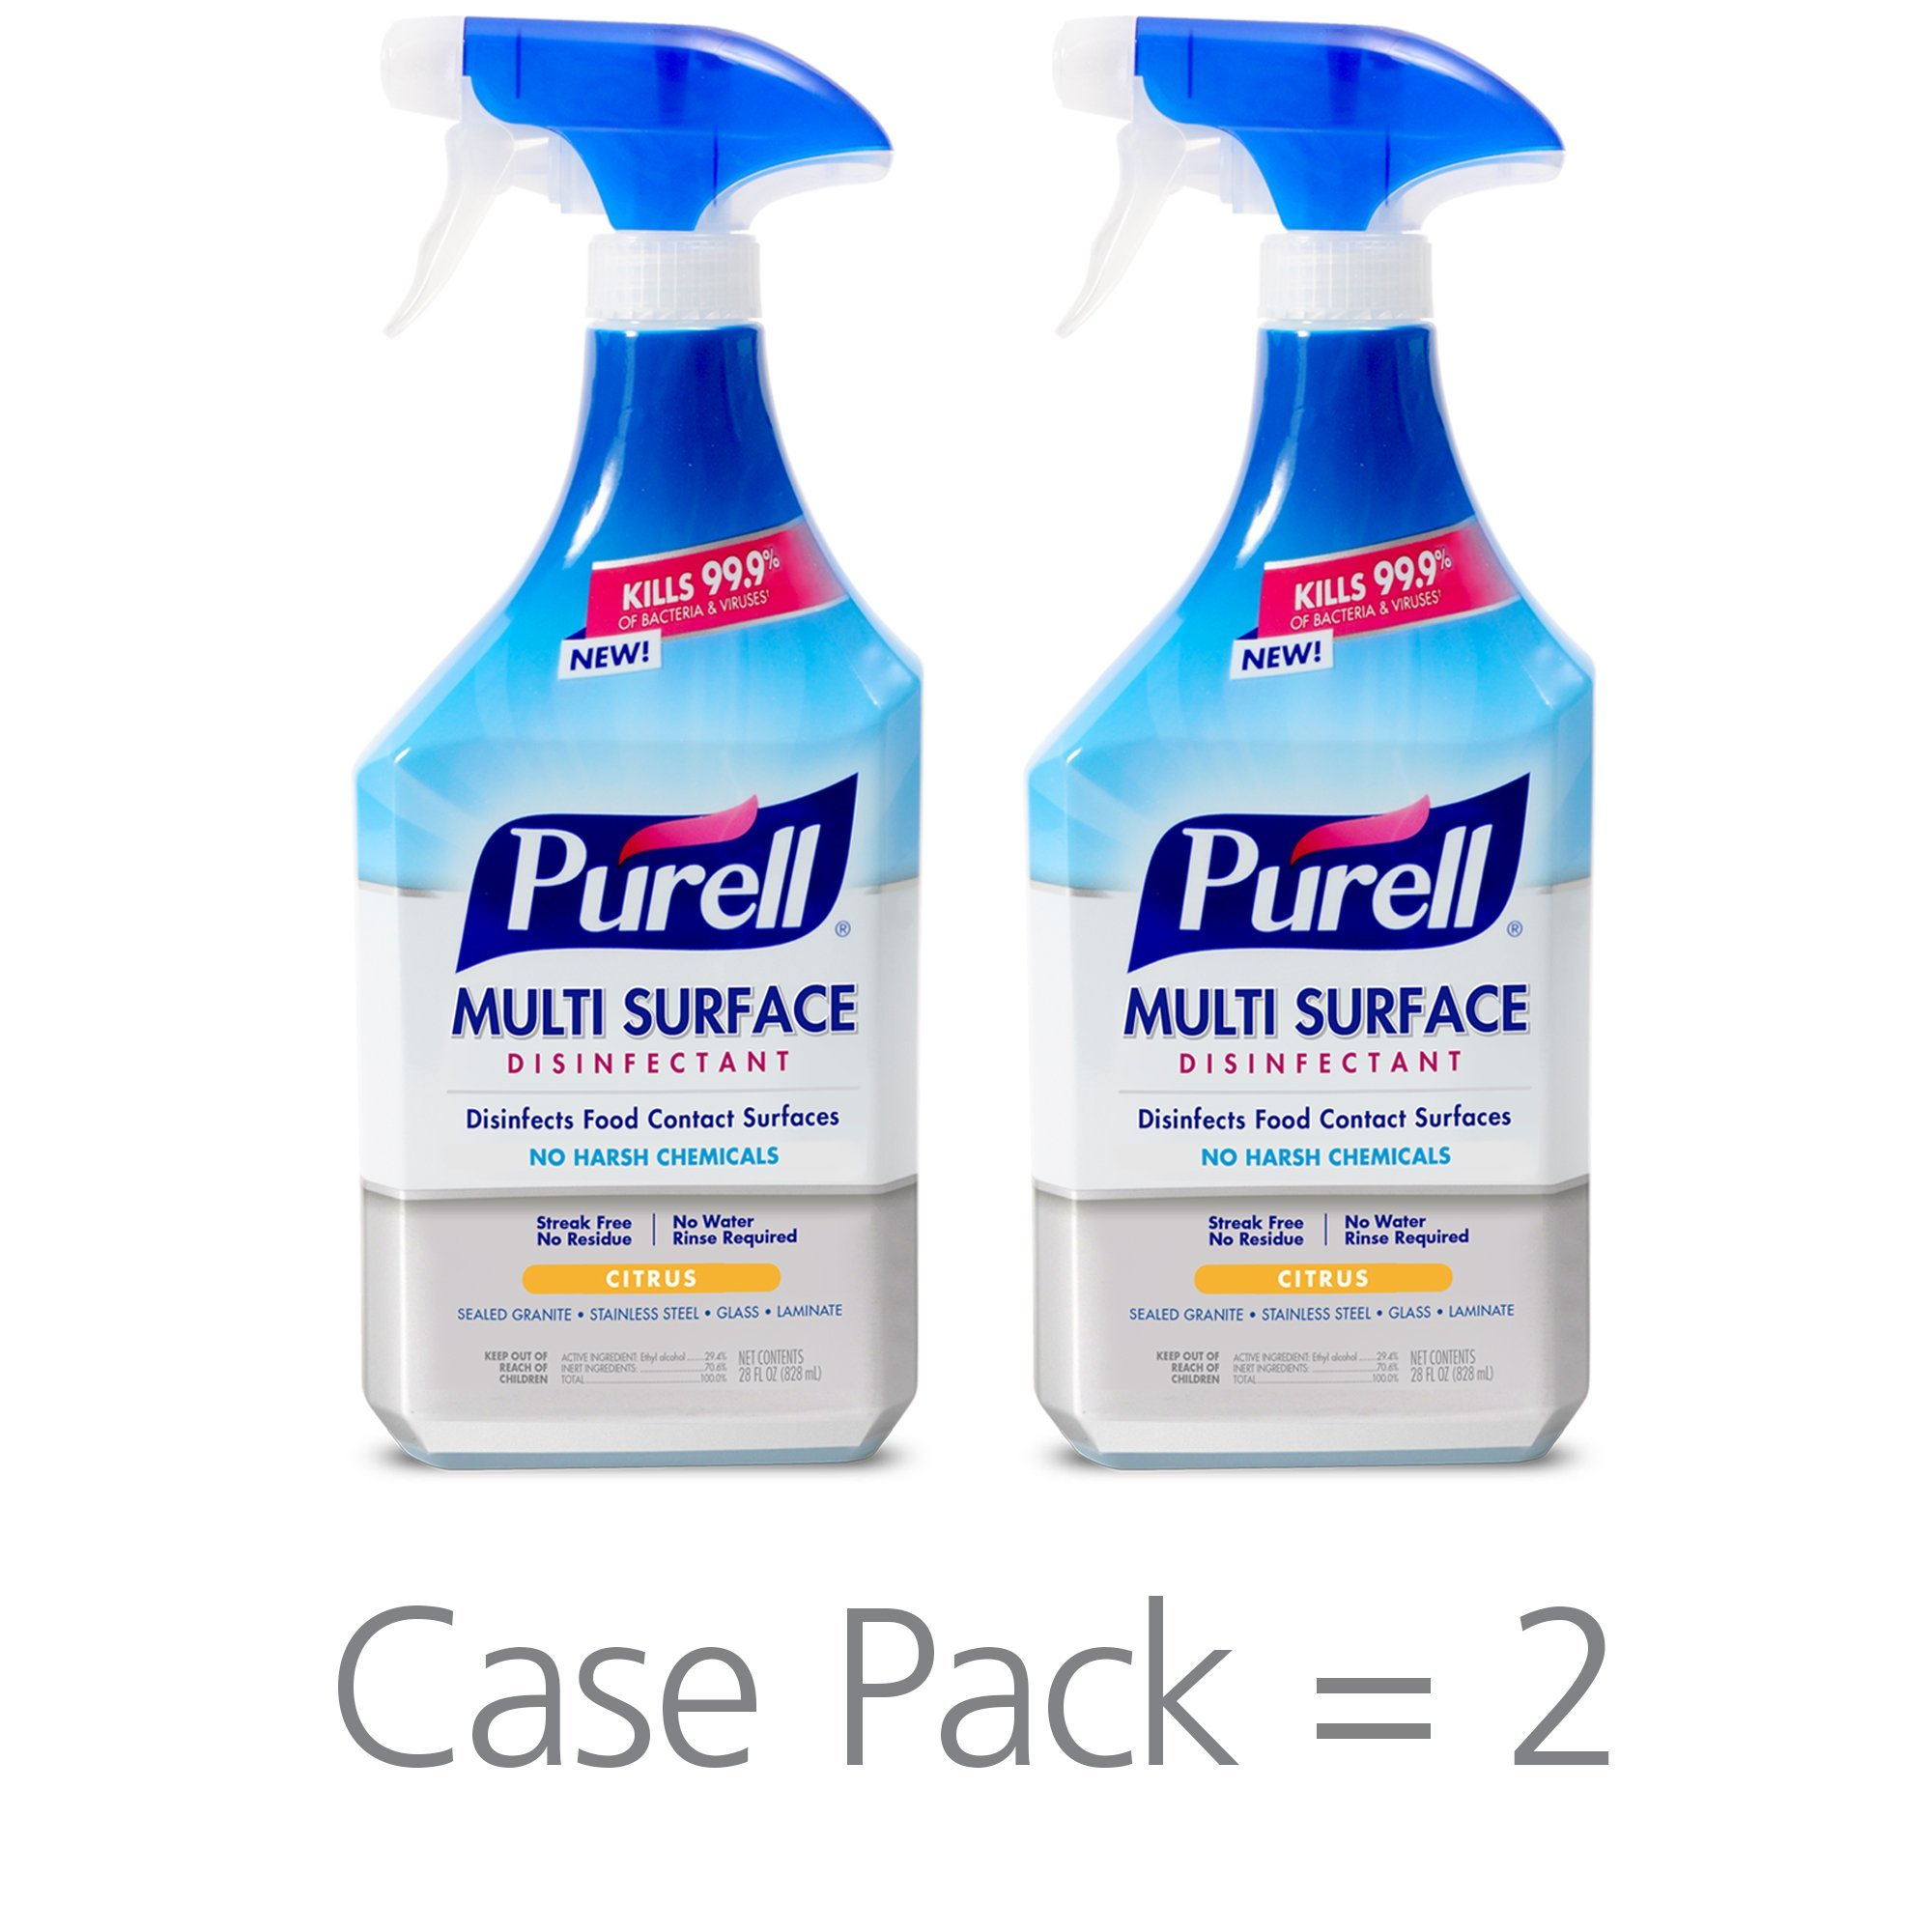 PURELL Multi Surface Disinfectant Spray – Citrus Fragrance, Voted 2018 Product of The Year - 28 oz. Spray Bottle (Pack of 2) - 2844-02-ECCAL